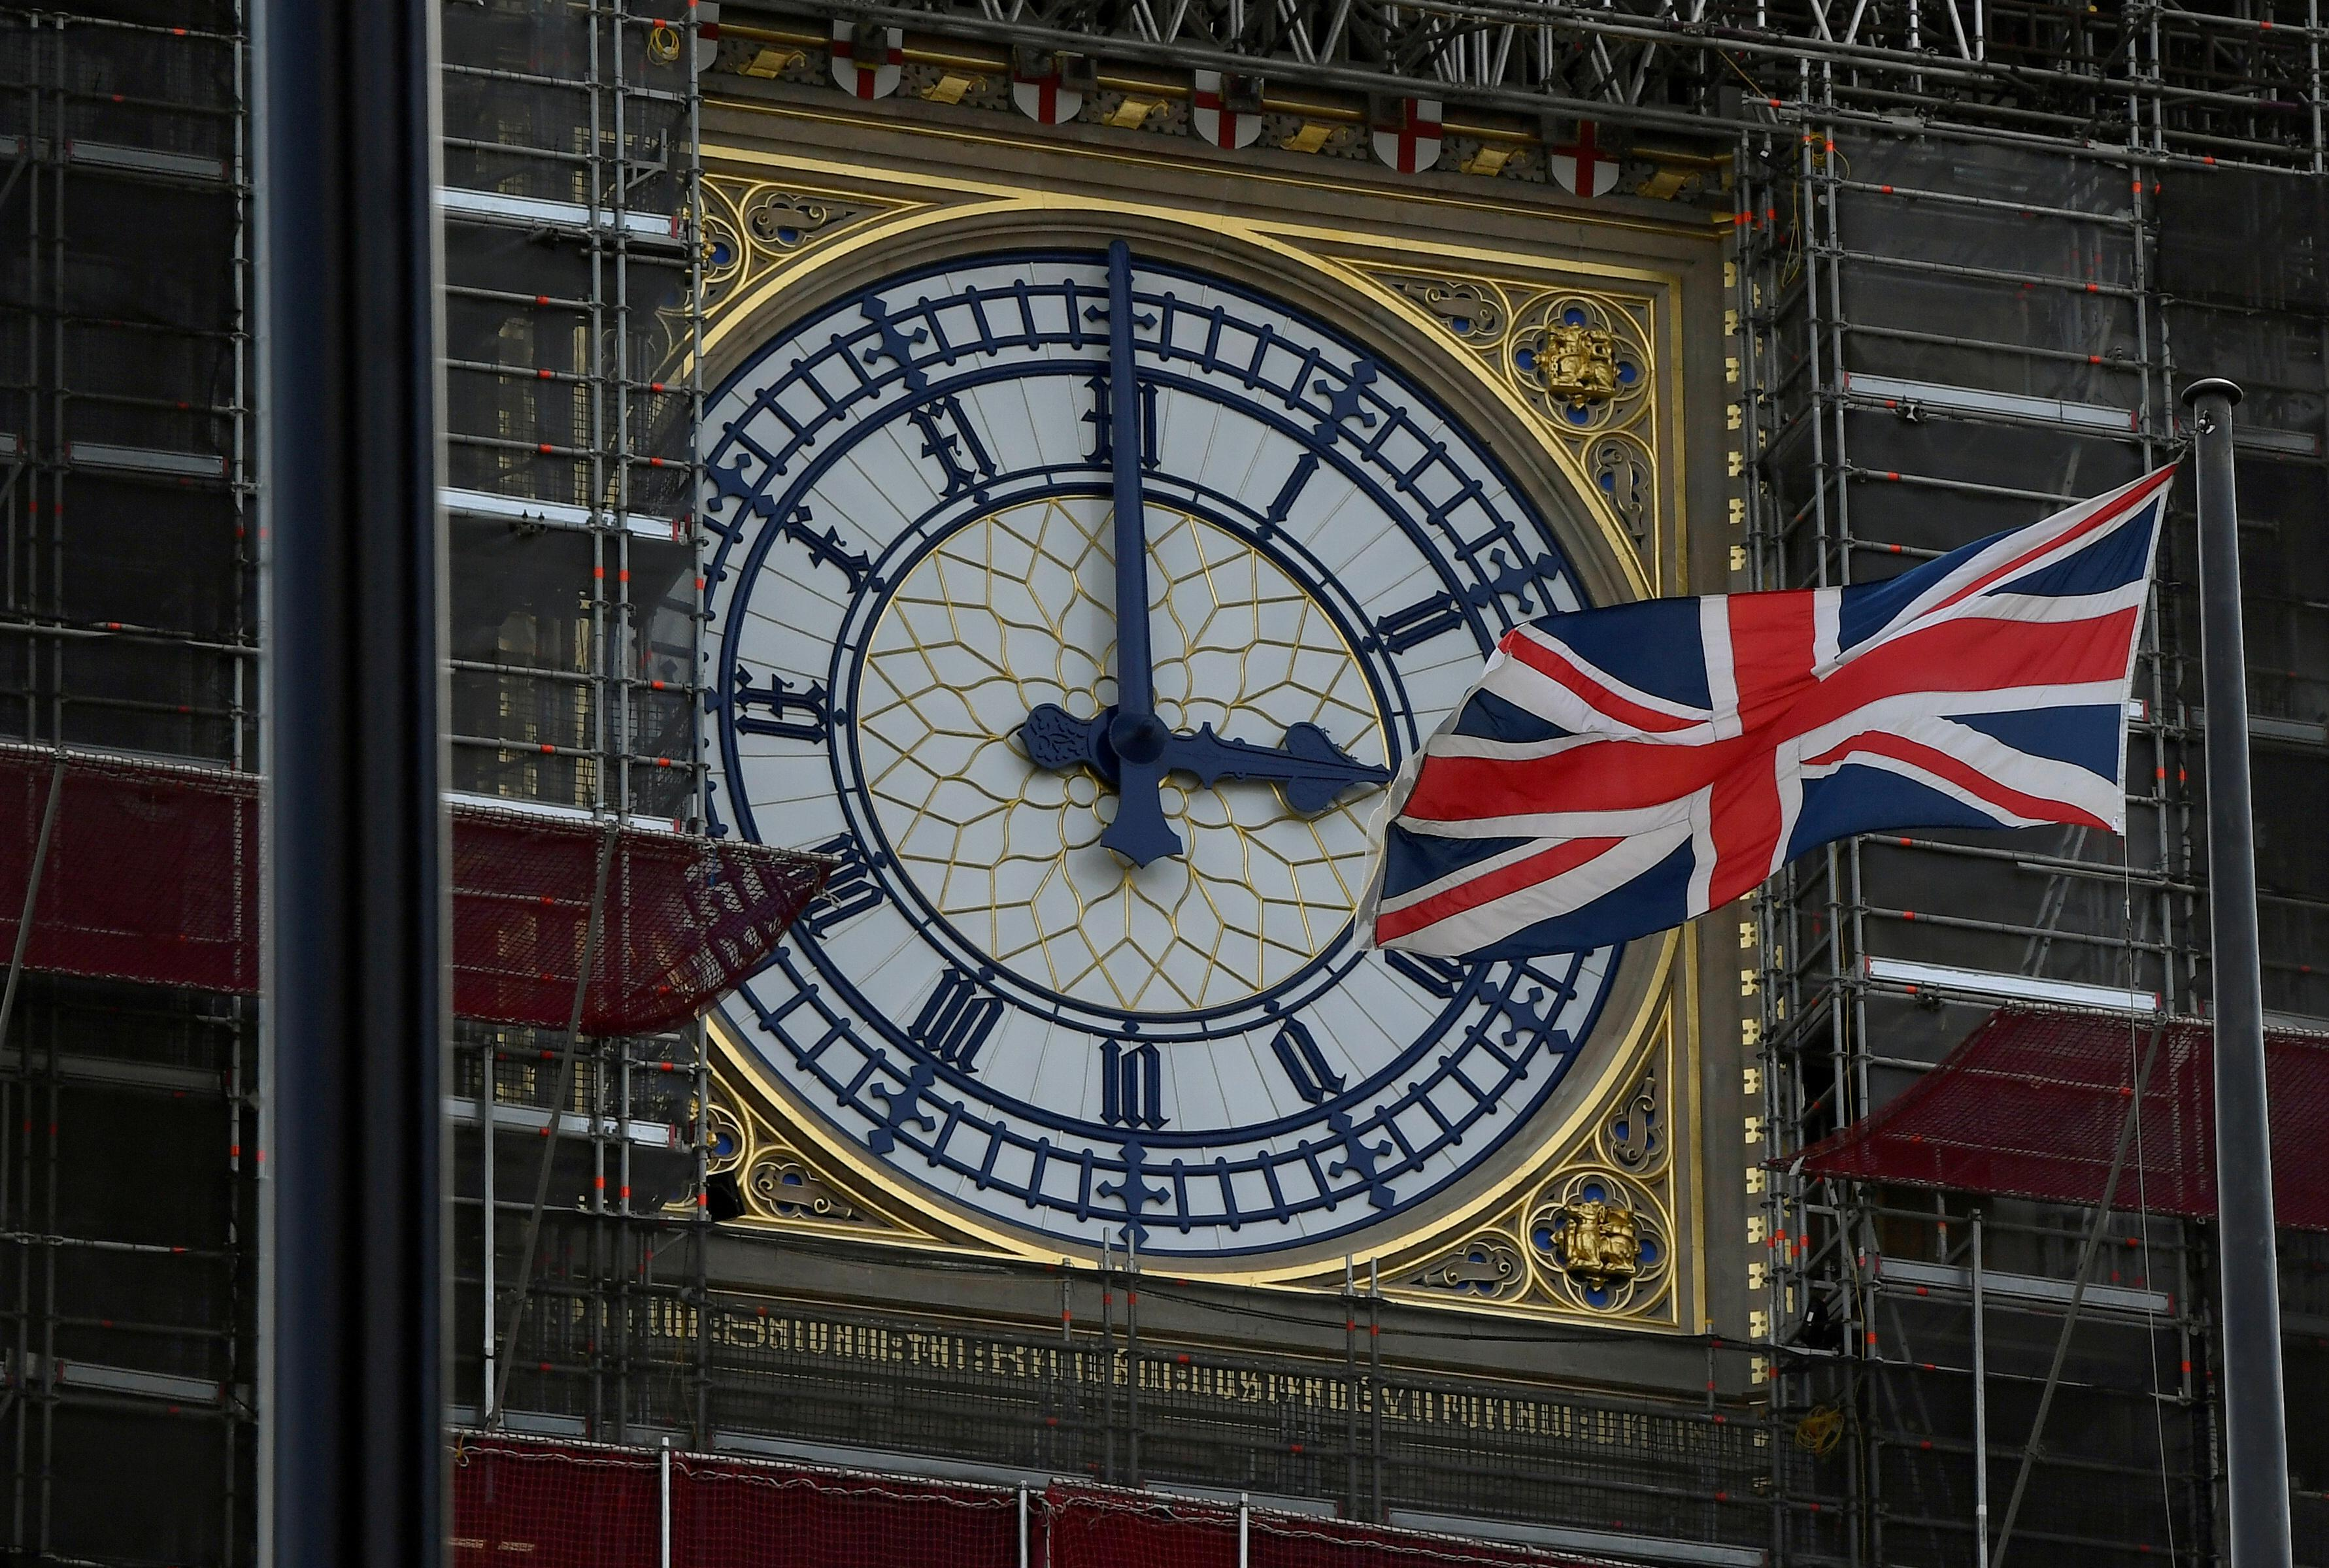 No Big Ben bongs: UK government plans light show to mark moment of...